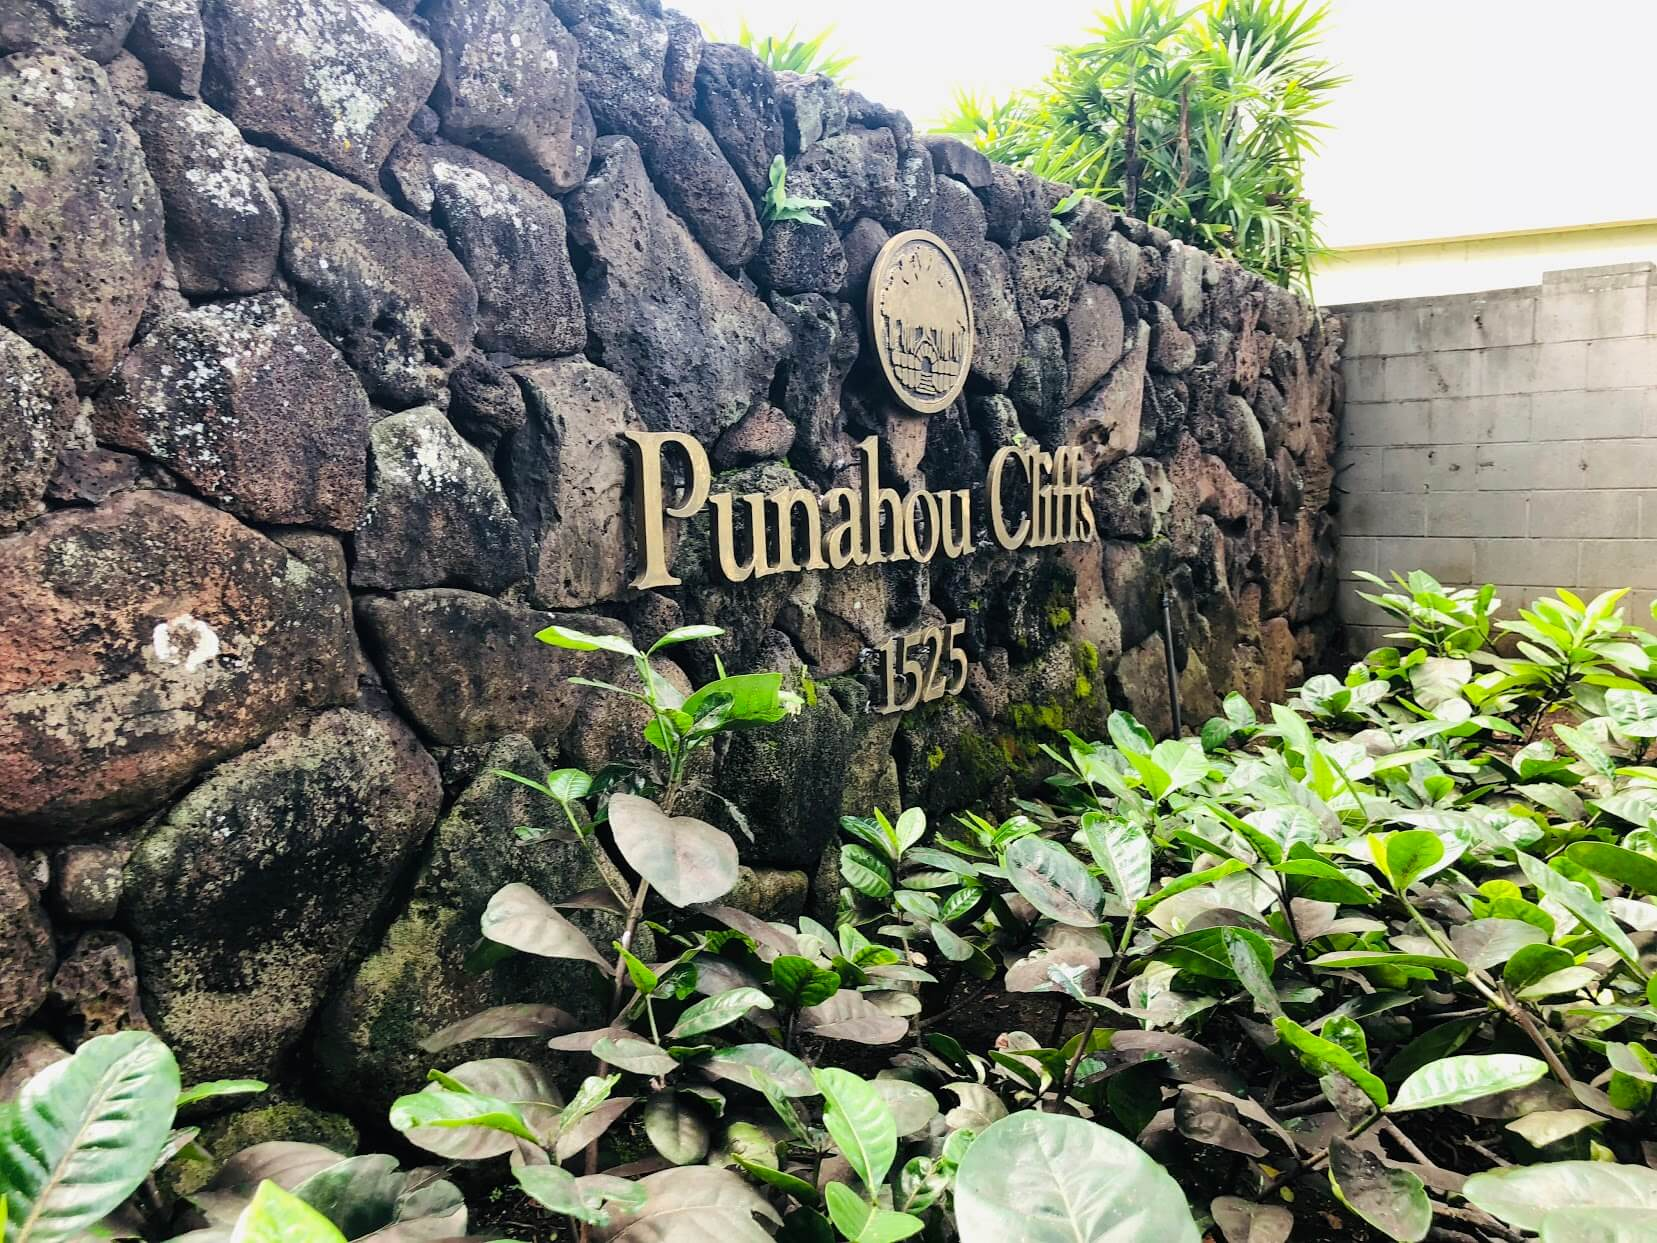 Punahou Cliffsの看板